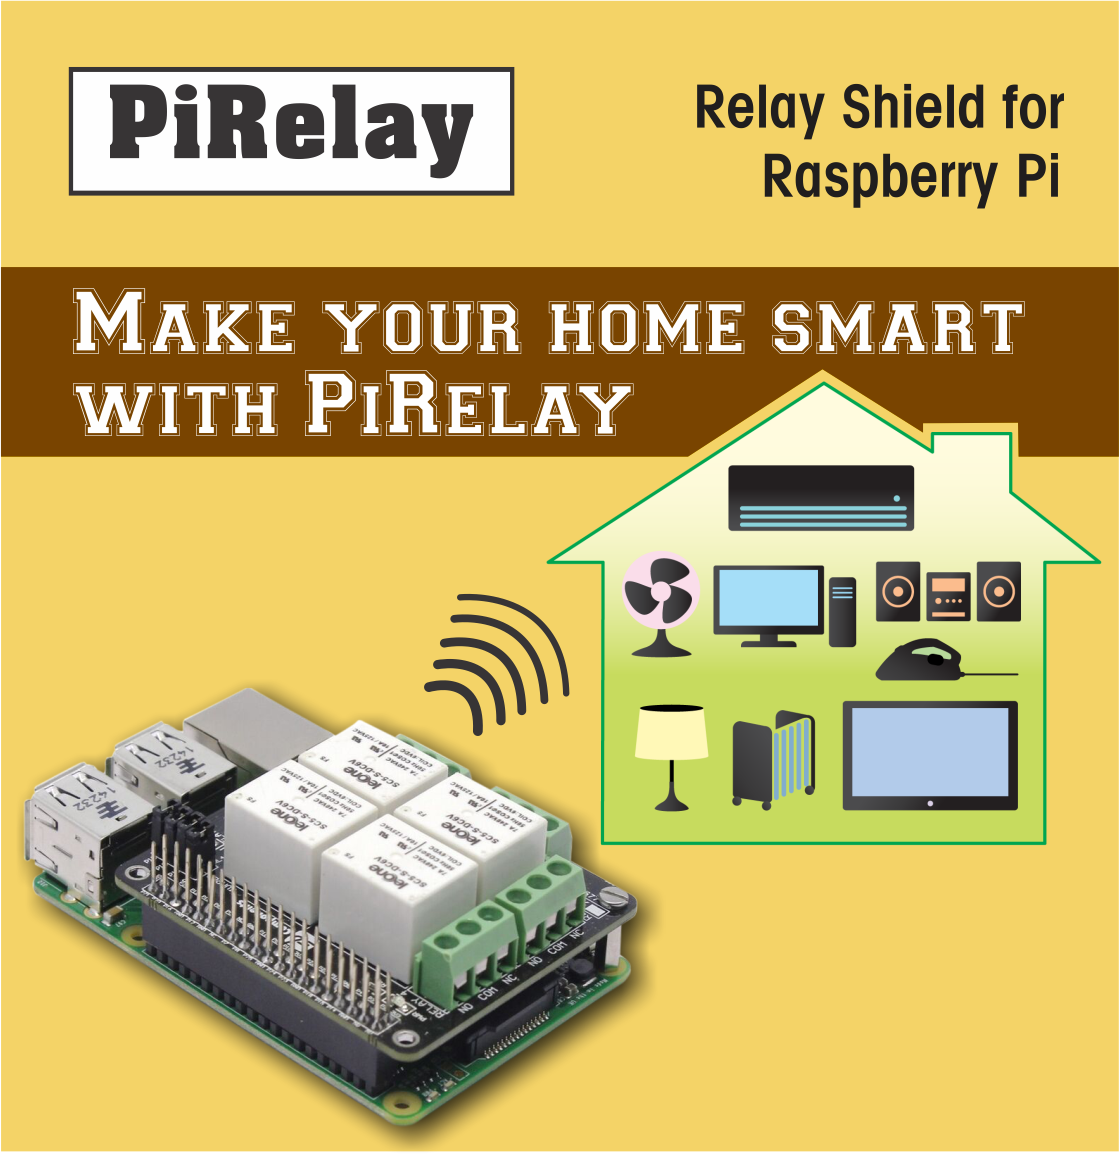 PiRelay - Relay Shield for Raspberry Pi | PiRelay | Raspberry, Home